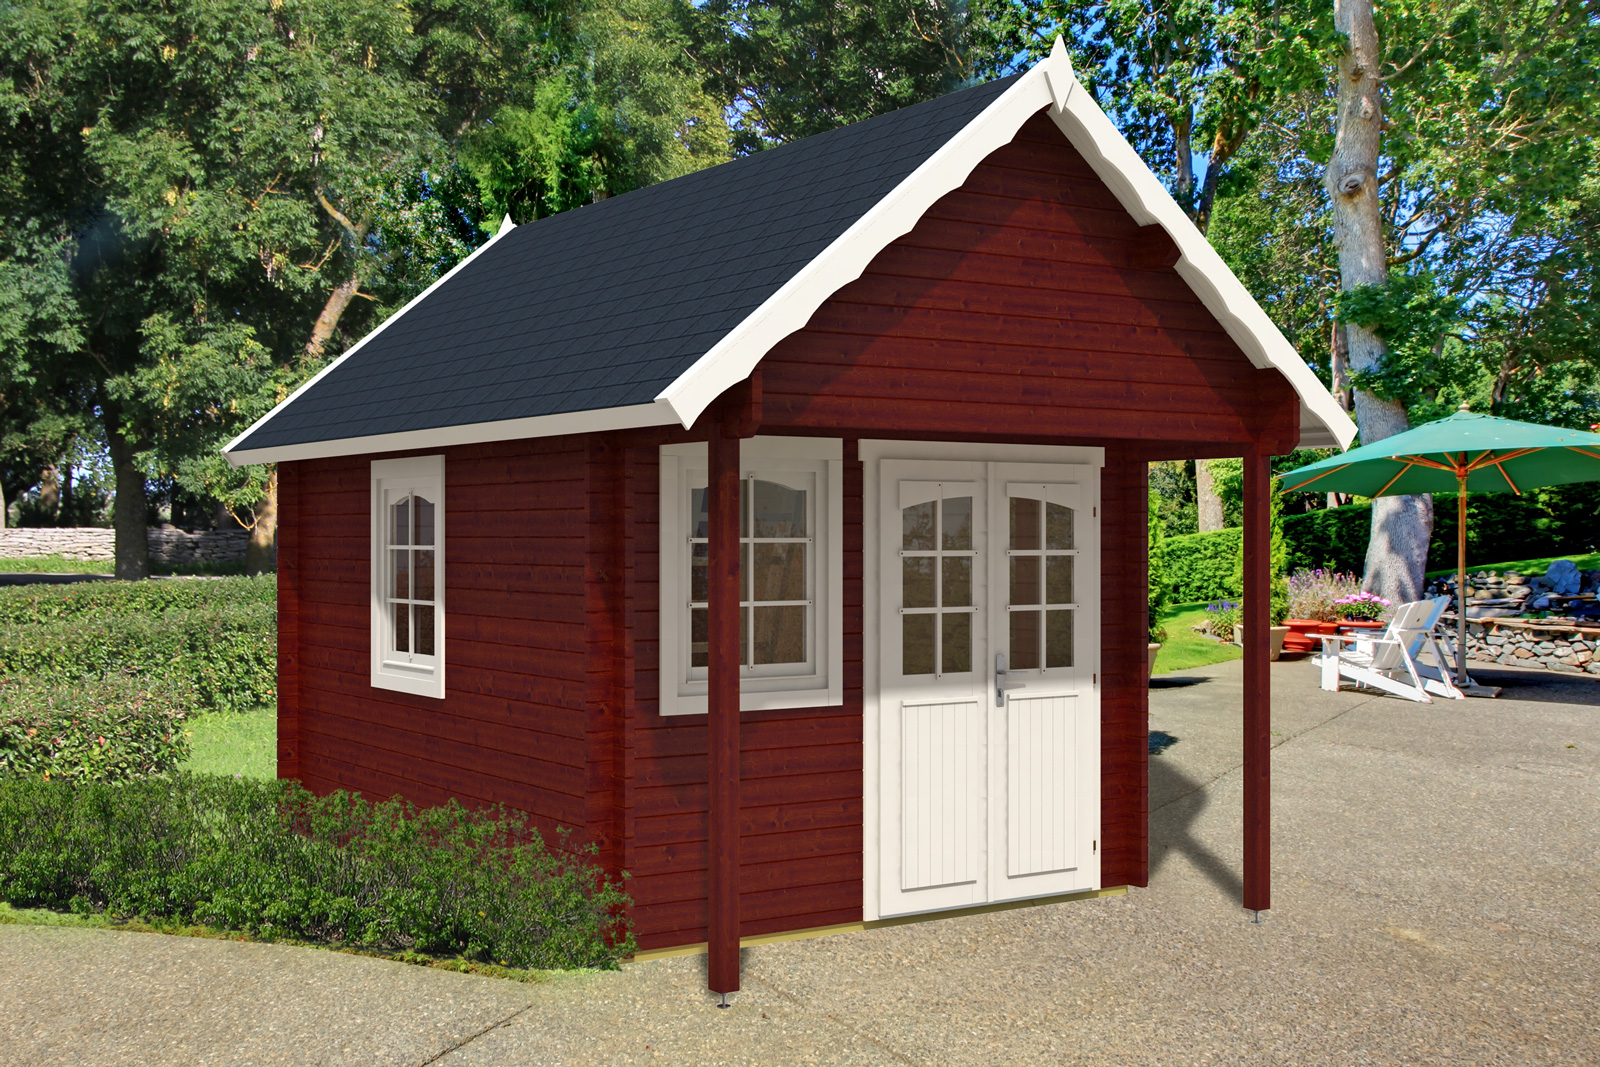 Bunkie prefab log cabin kit 150 sqft for Small cottage plans canada